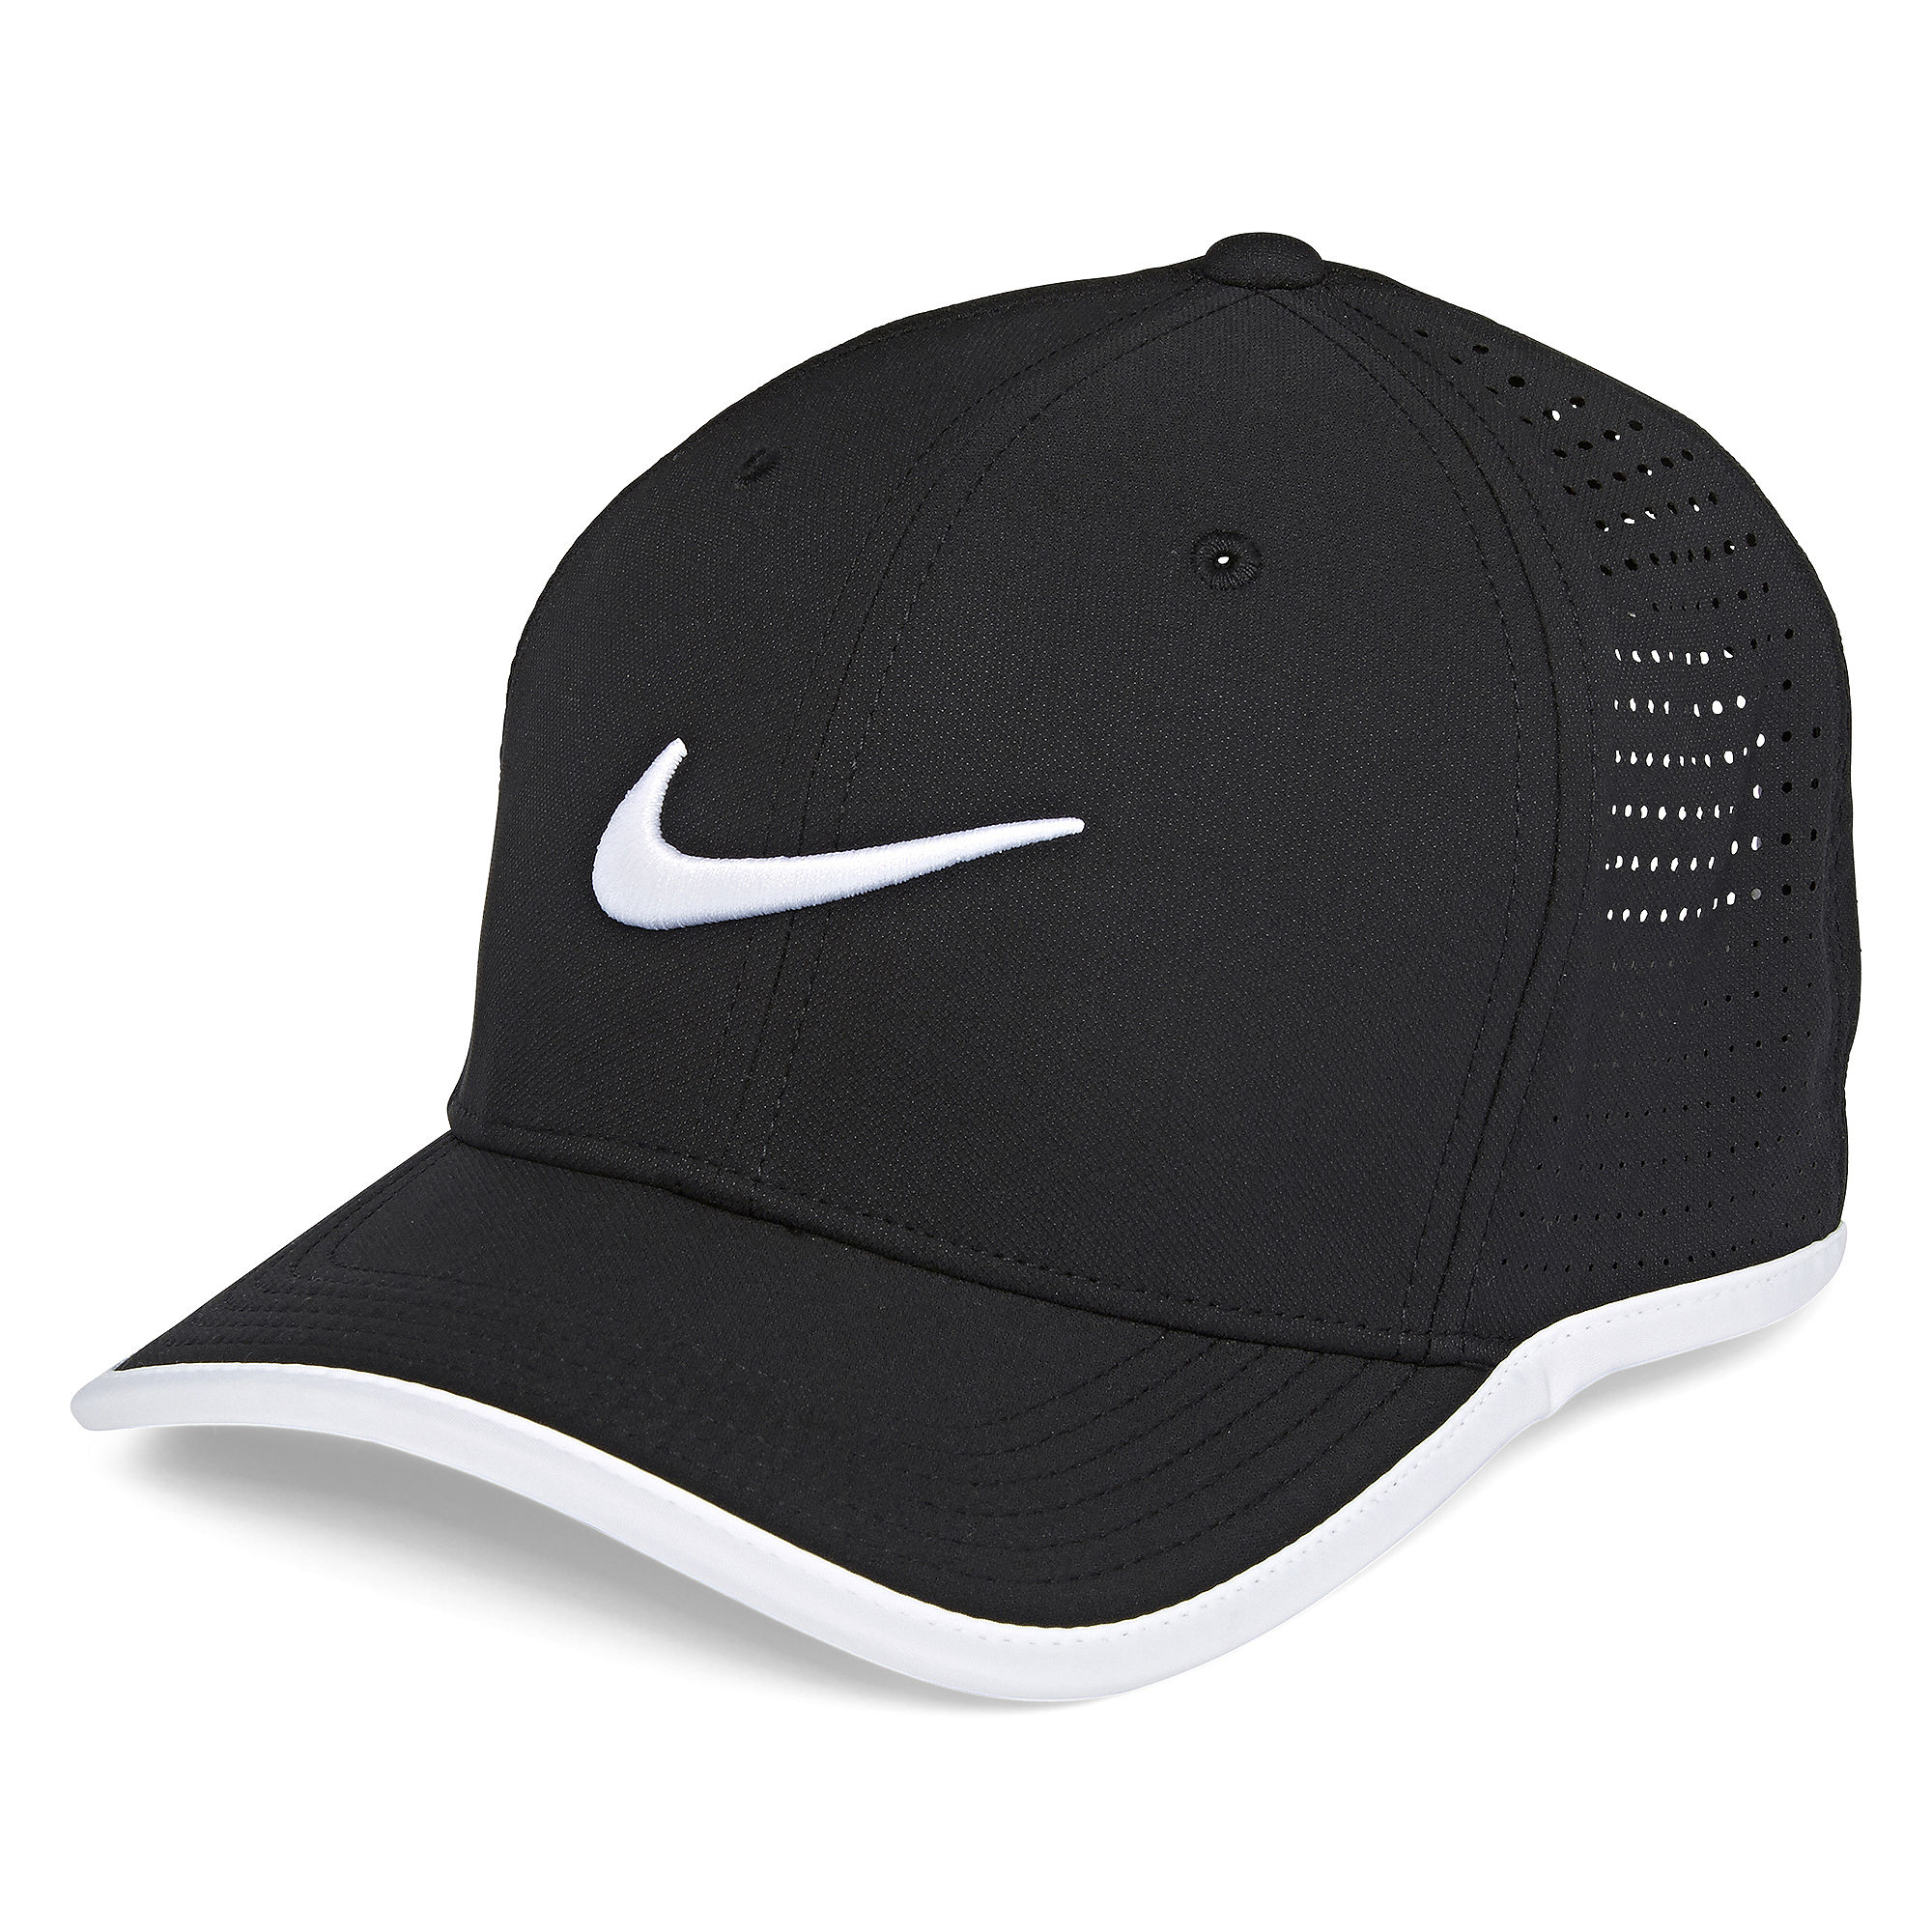 540287b936a UPC 666032103265. ZOOM. UPC 666032103265 has following Product Name  Variations  Nike Unisex Aerobill Classic 99 Adjustable Back Hat